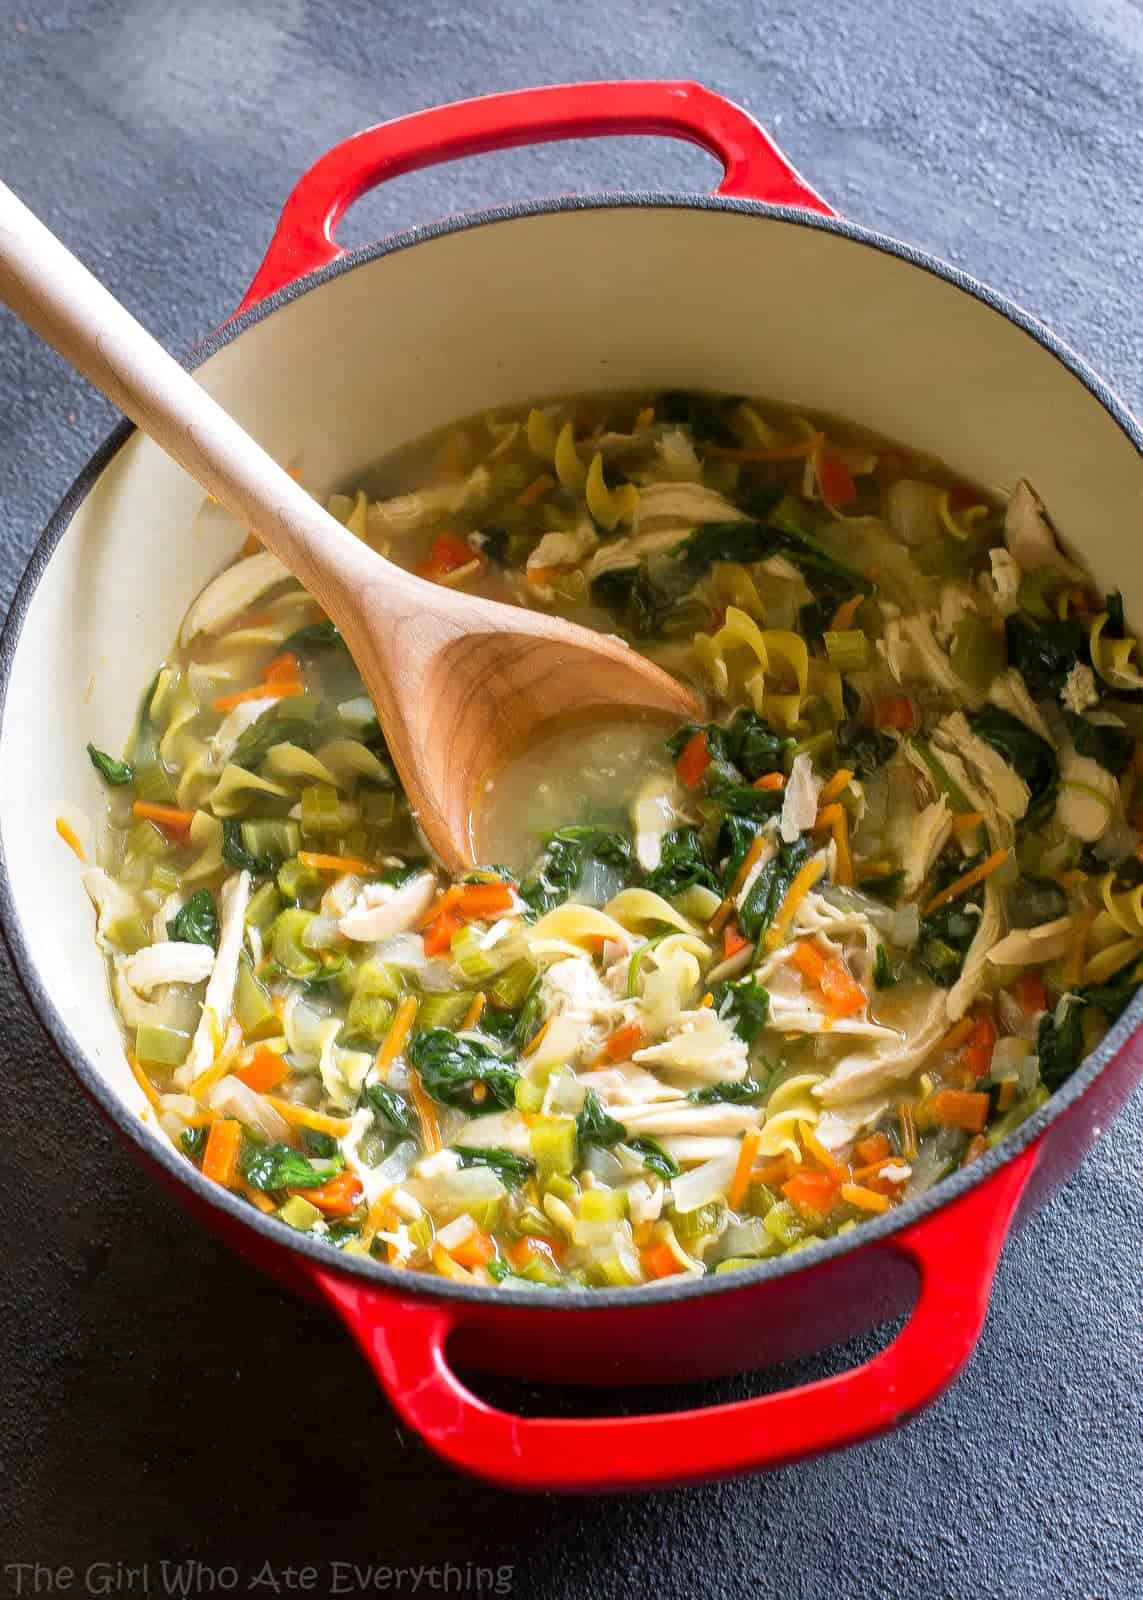 Chicken Soup Recipe Healthy  Healthy Ve able Chicken Soup The Girl Who Ate Everything